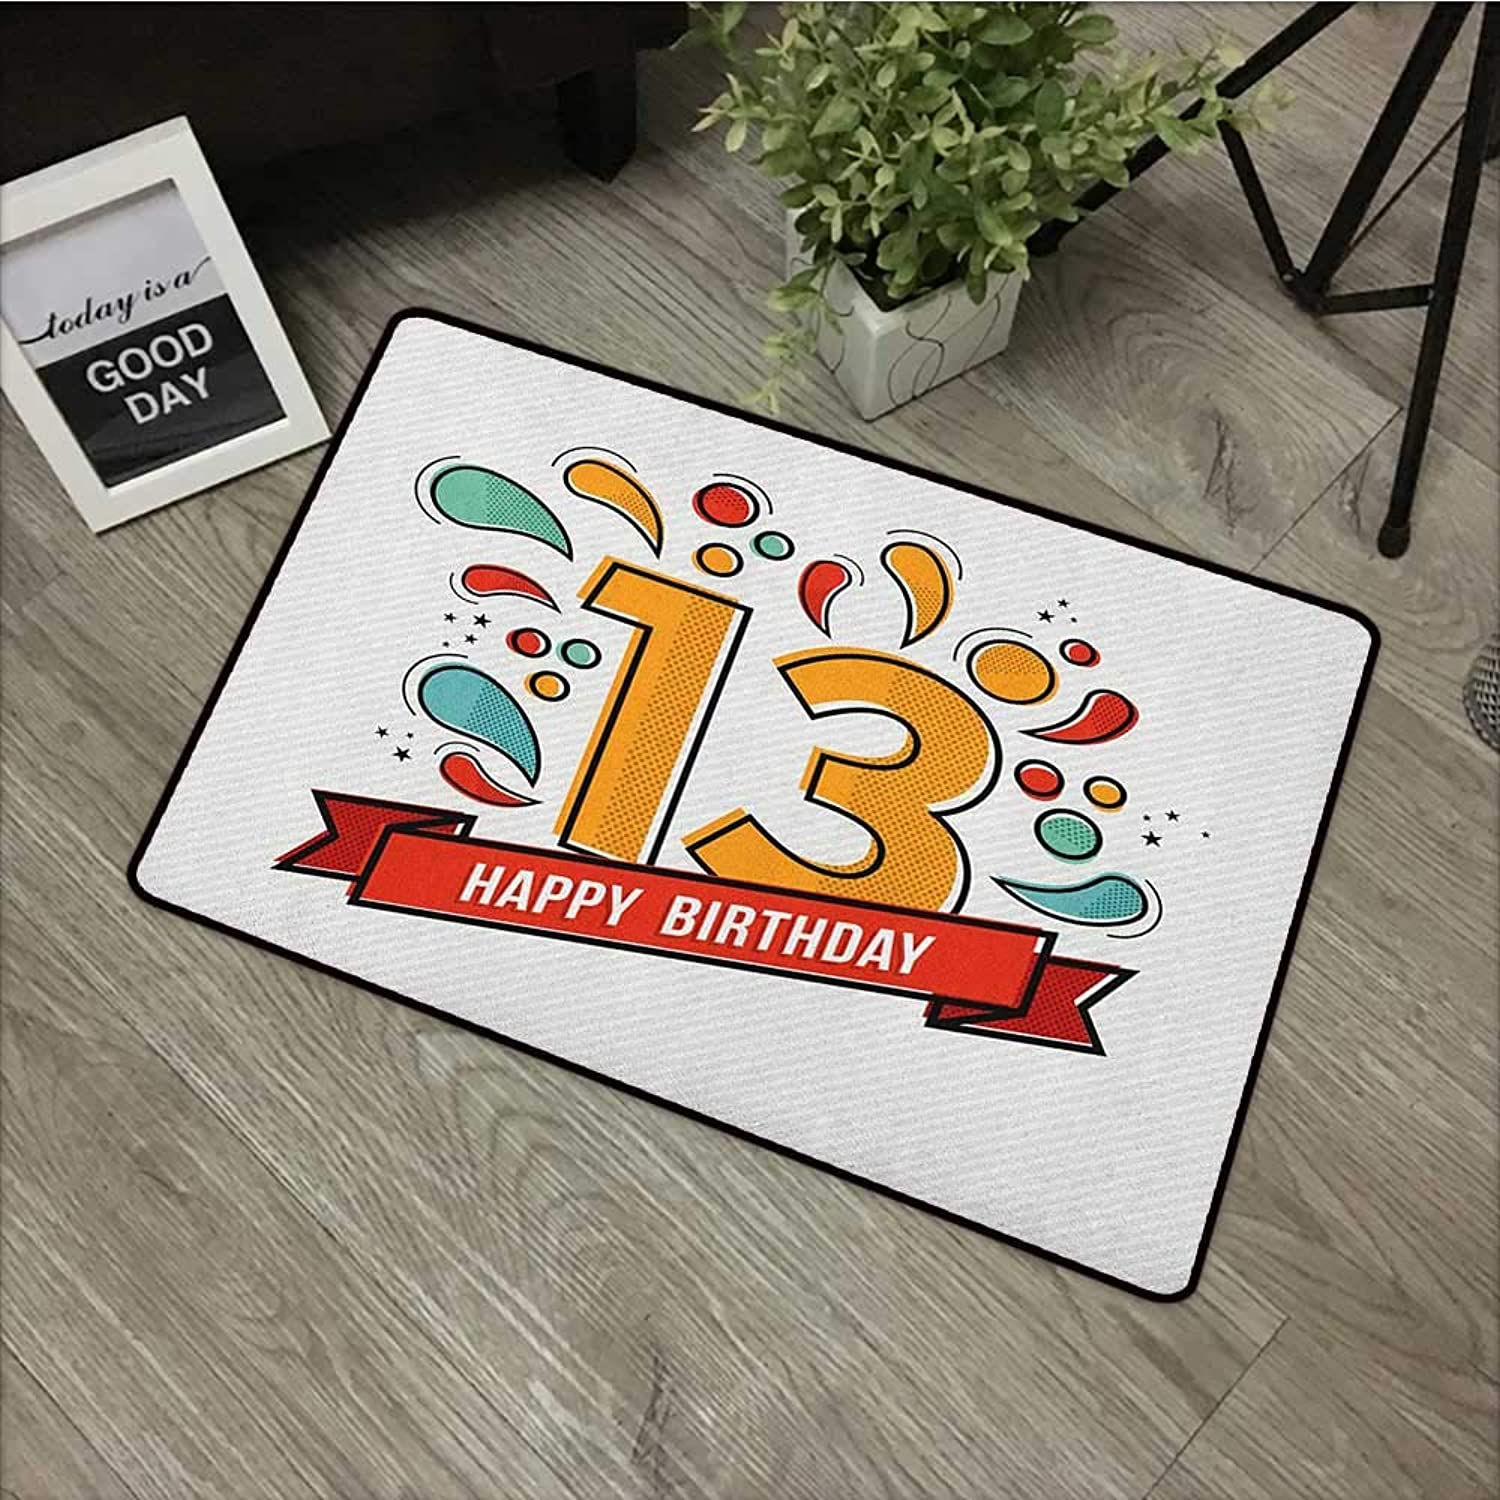 Living room door mat W35 x L59 INCH 13th Birthday,Modern Line Art Style Greeting for Thirteen Years Old Artsy Geometric Design, Multicolor Easy to clean, no deformation, no fading Non-slip Door Mat Ca